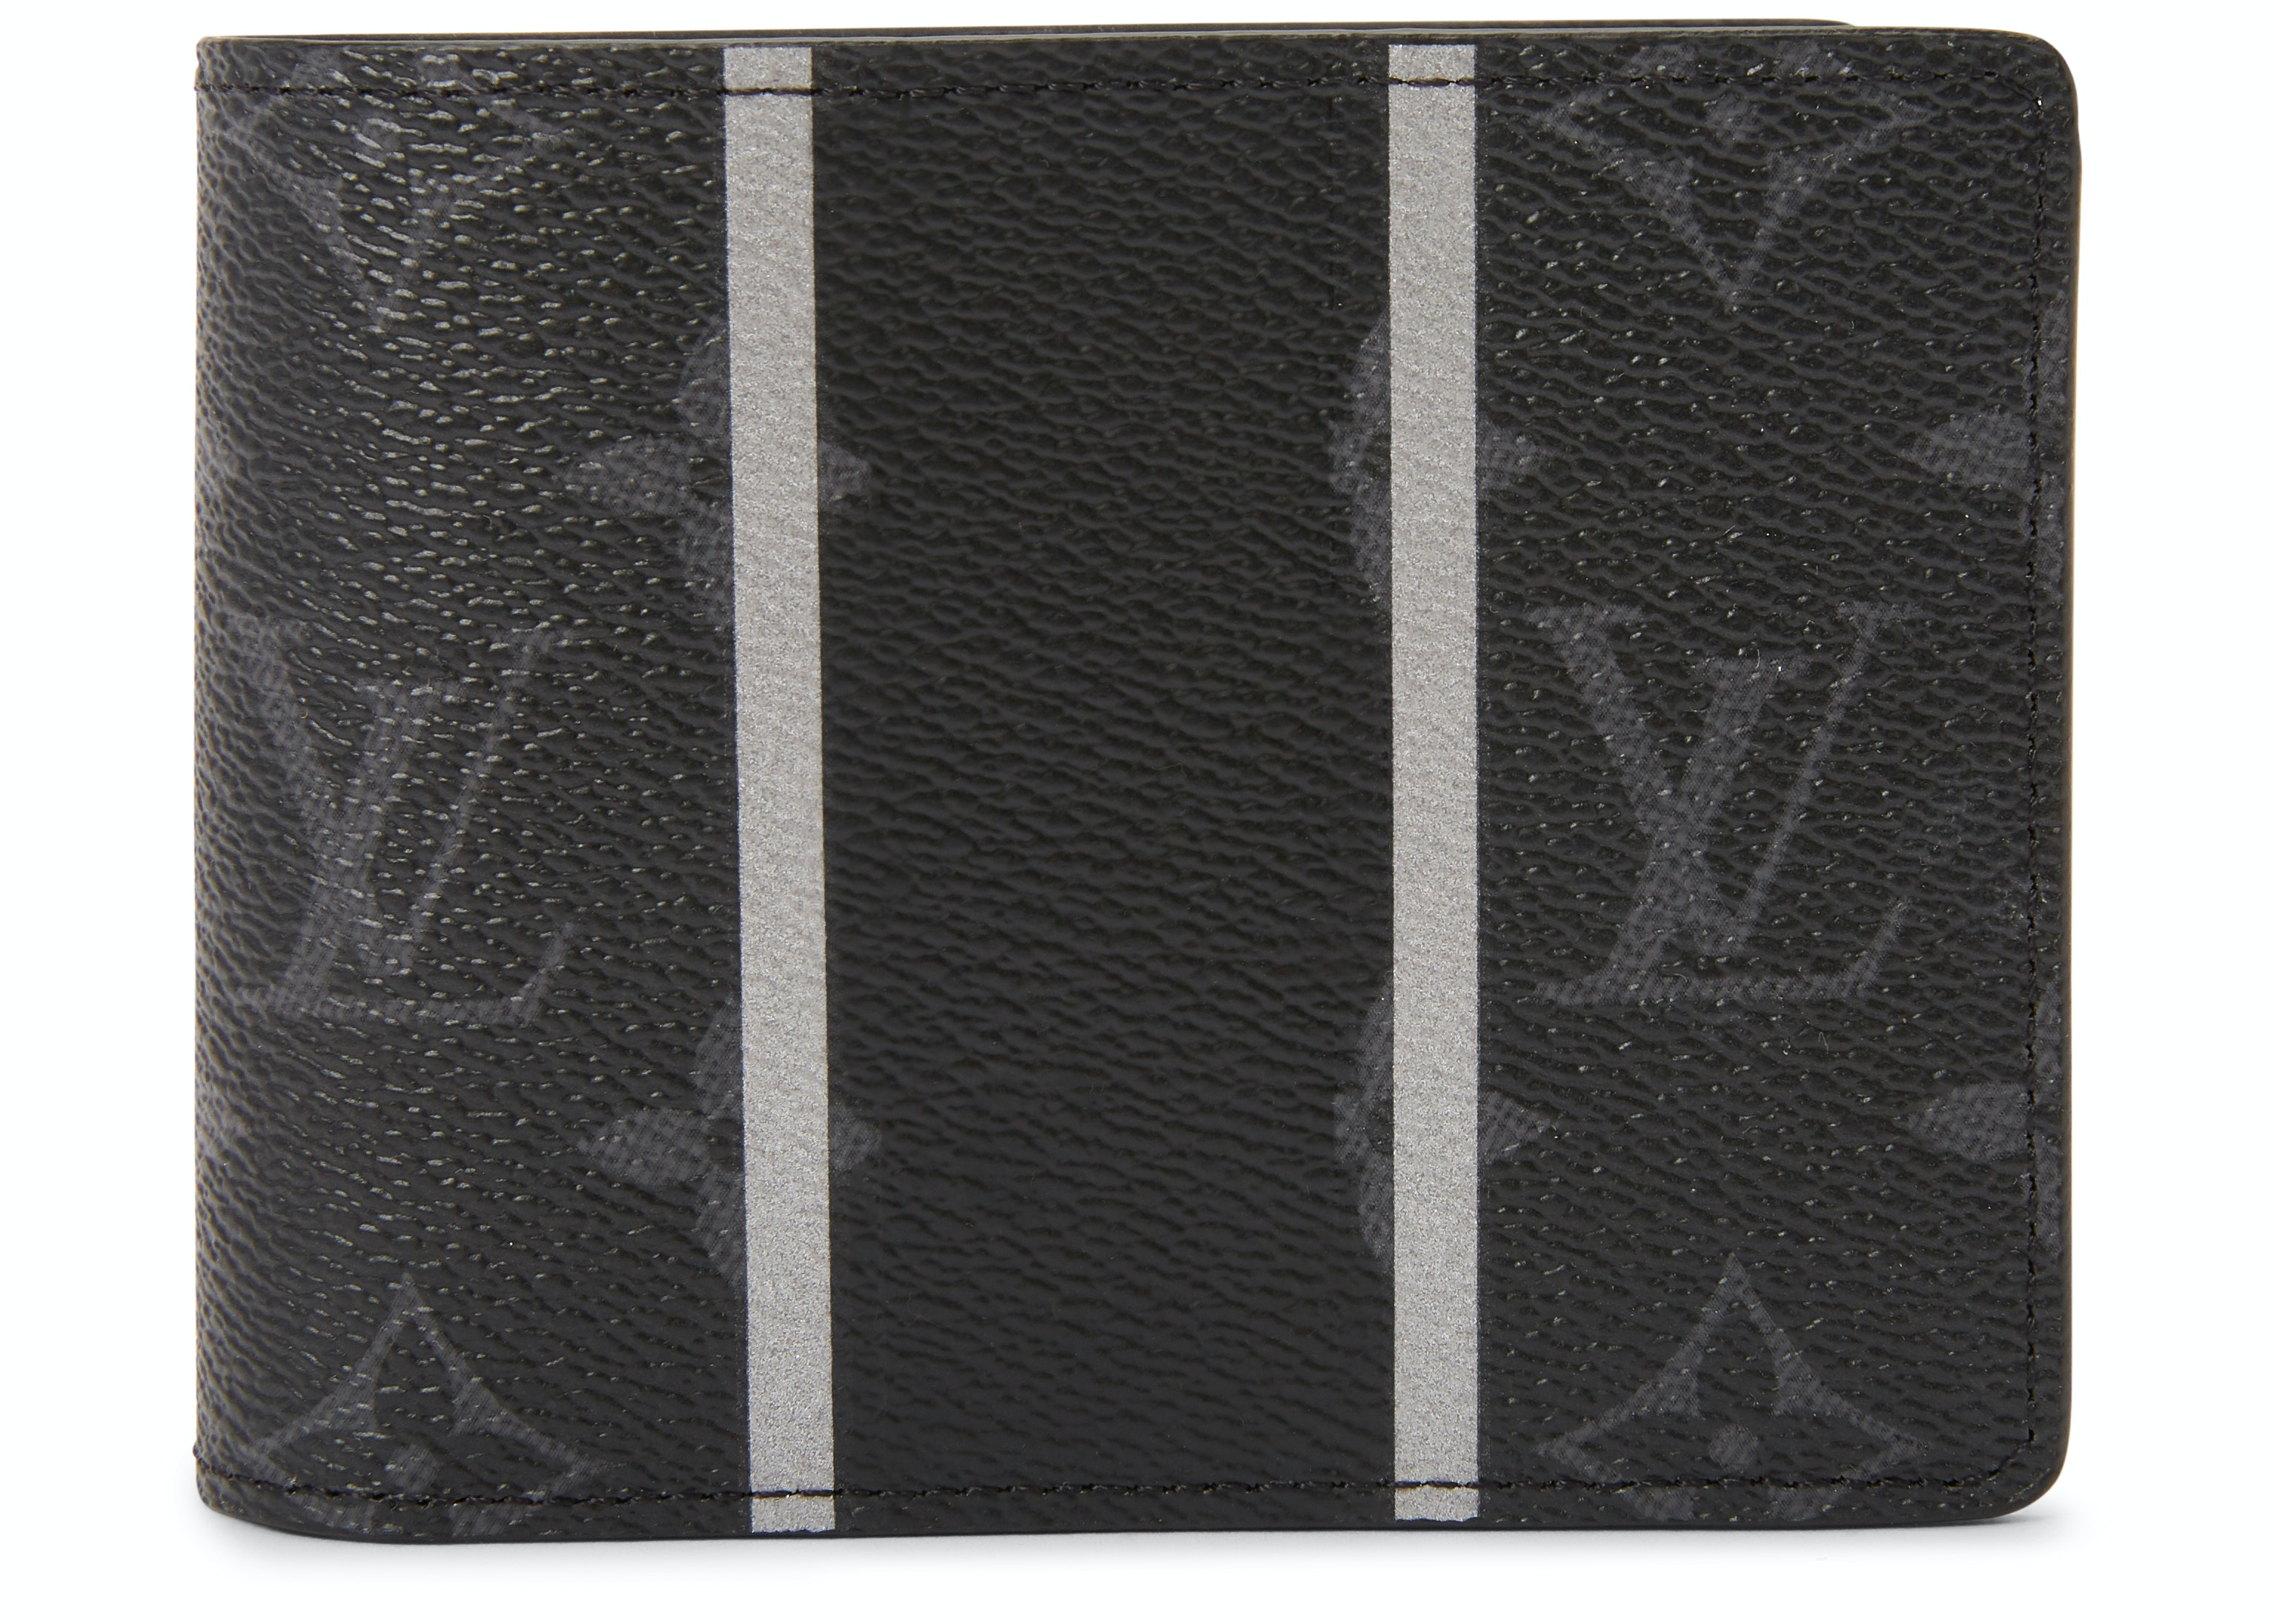 Louis Vuitton x Fragment Multiple Wallet Monogram Eclipse Black